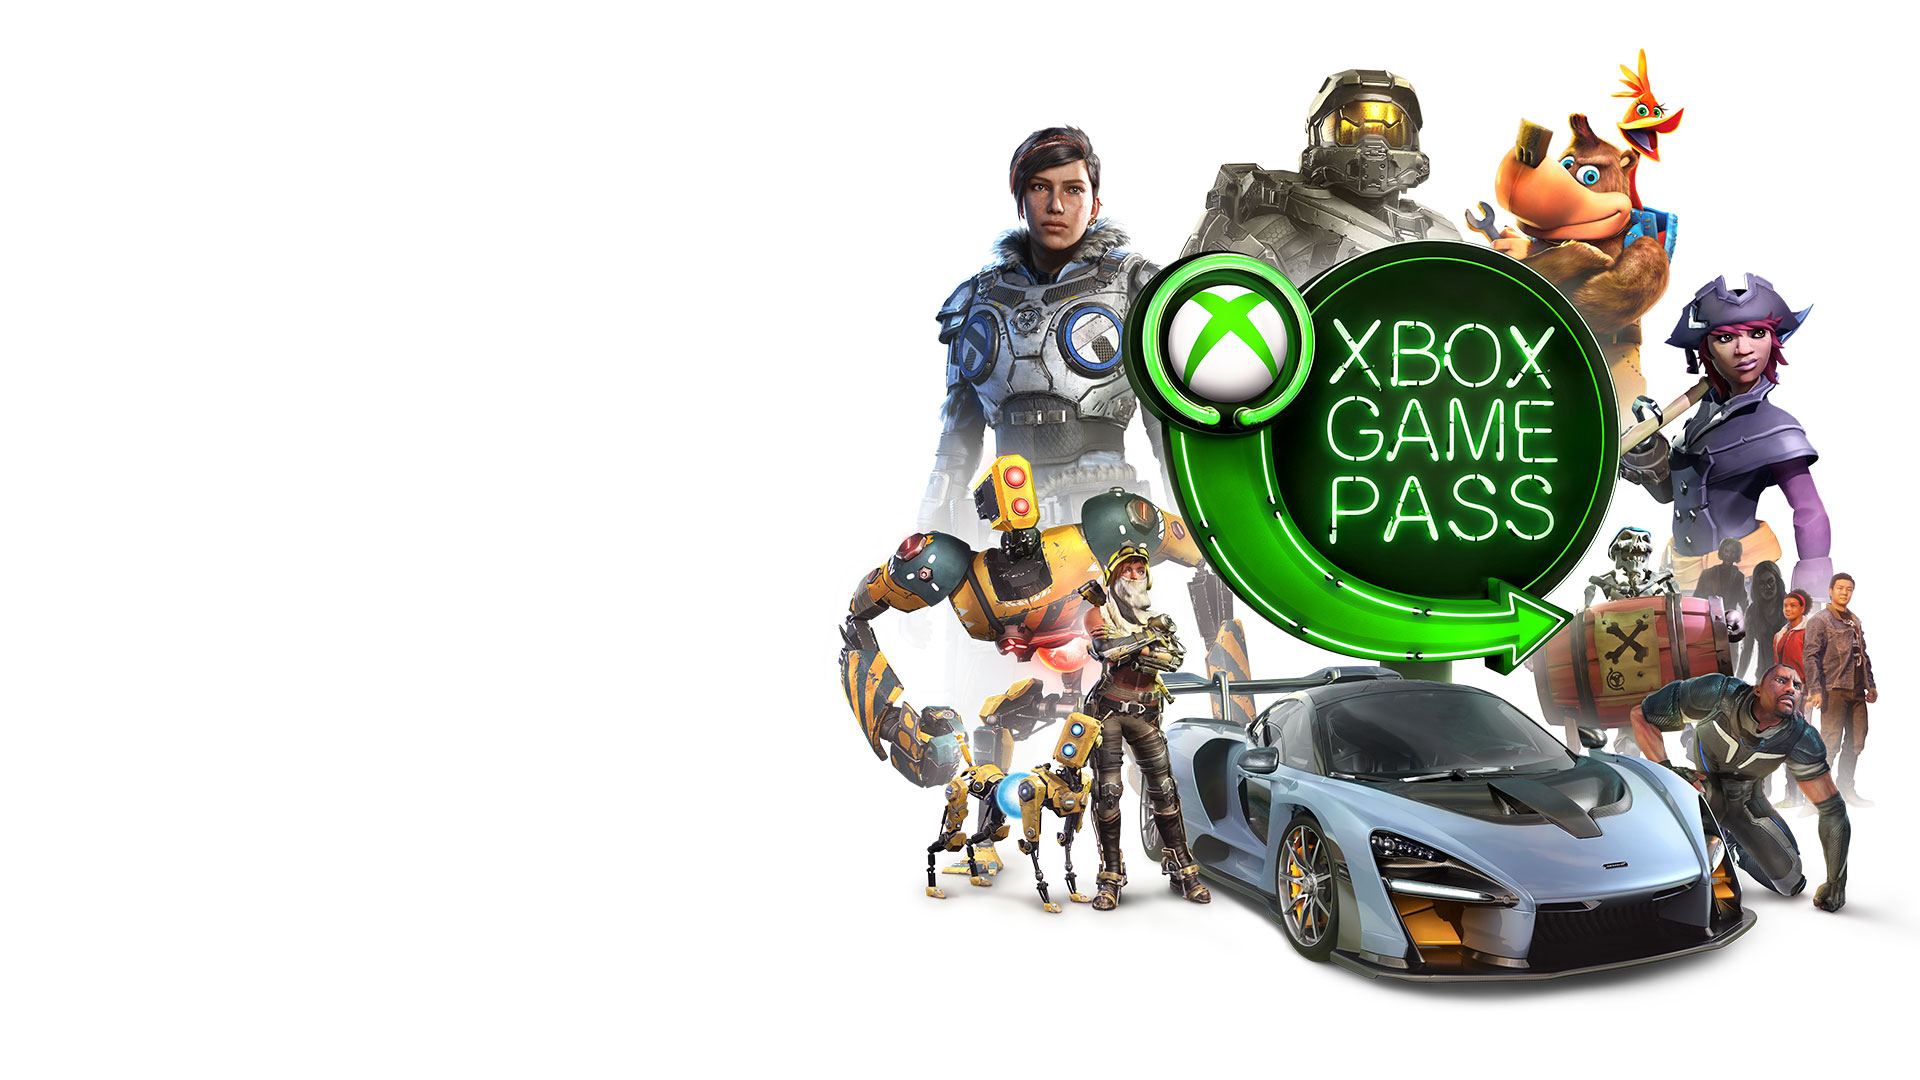 Logótipo do Xbox Game Pass rodeado por personagens como o Master Chief, Banjo e Kazooie, Piratas do Sea of Thieves e personagens do Recore